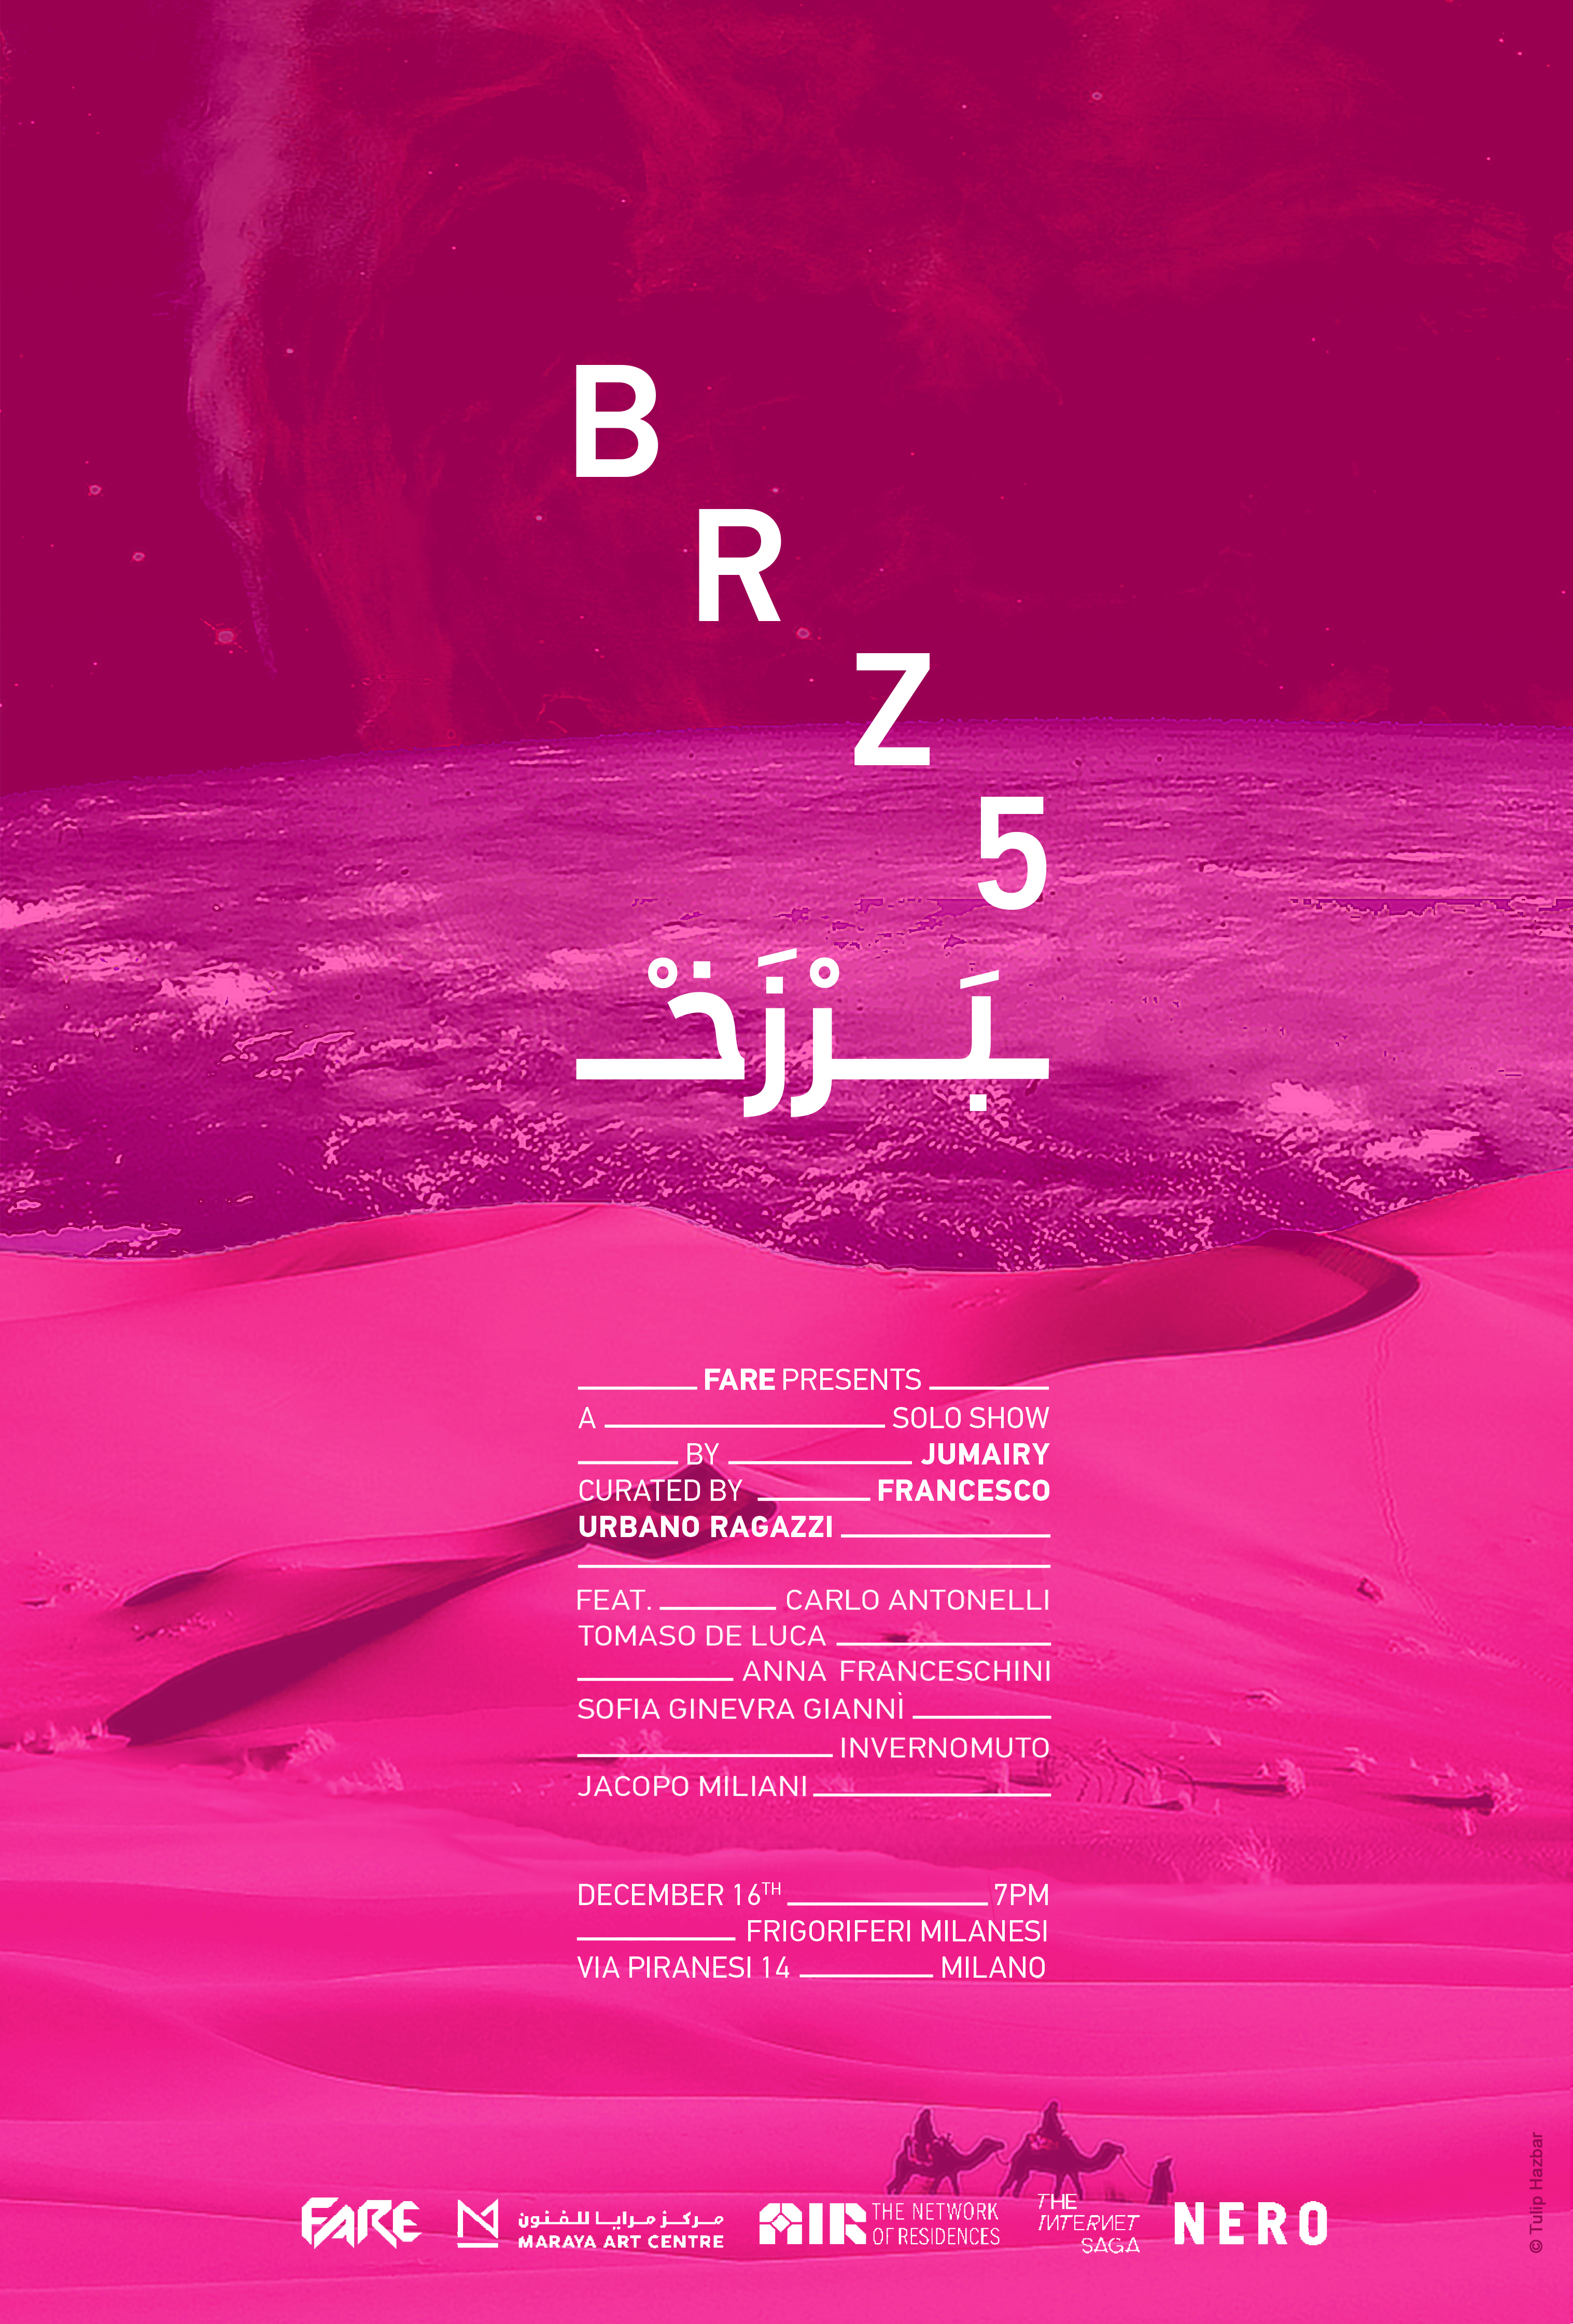 BRZ5 – Final exhibition by Jumairy